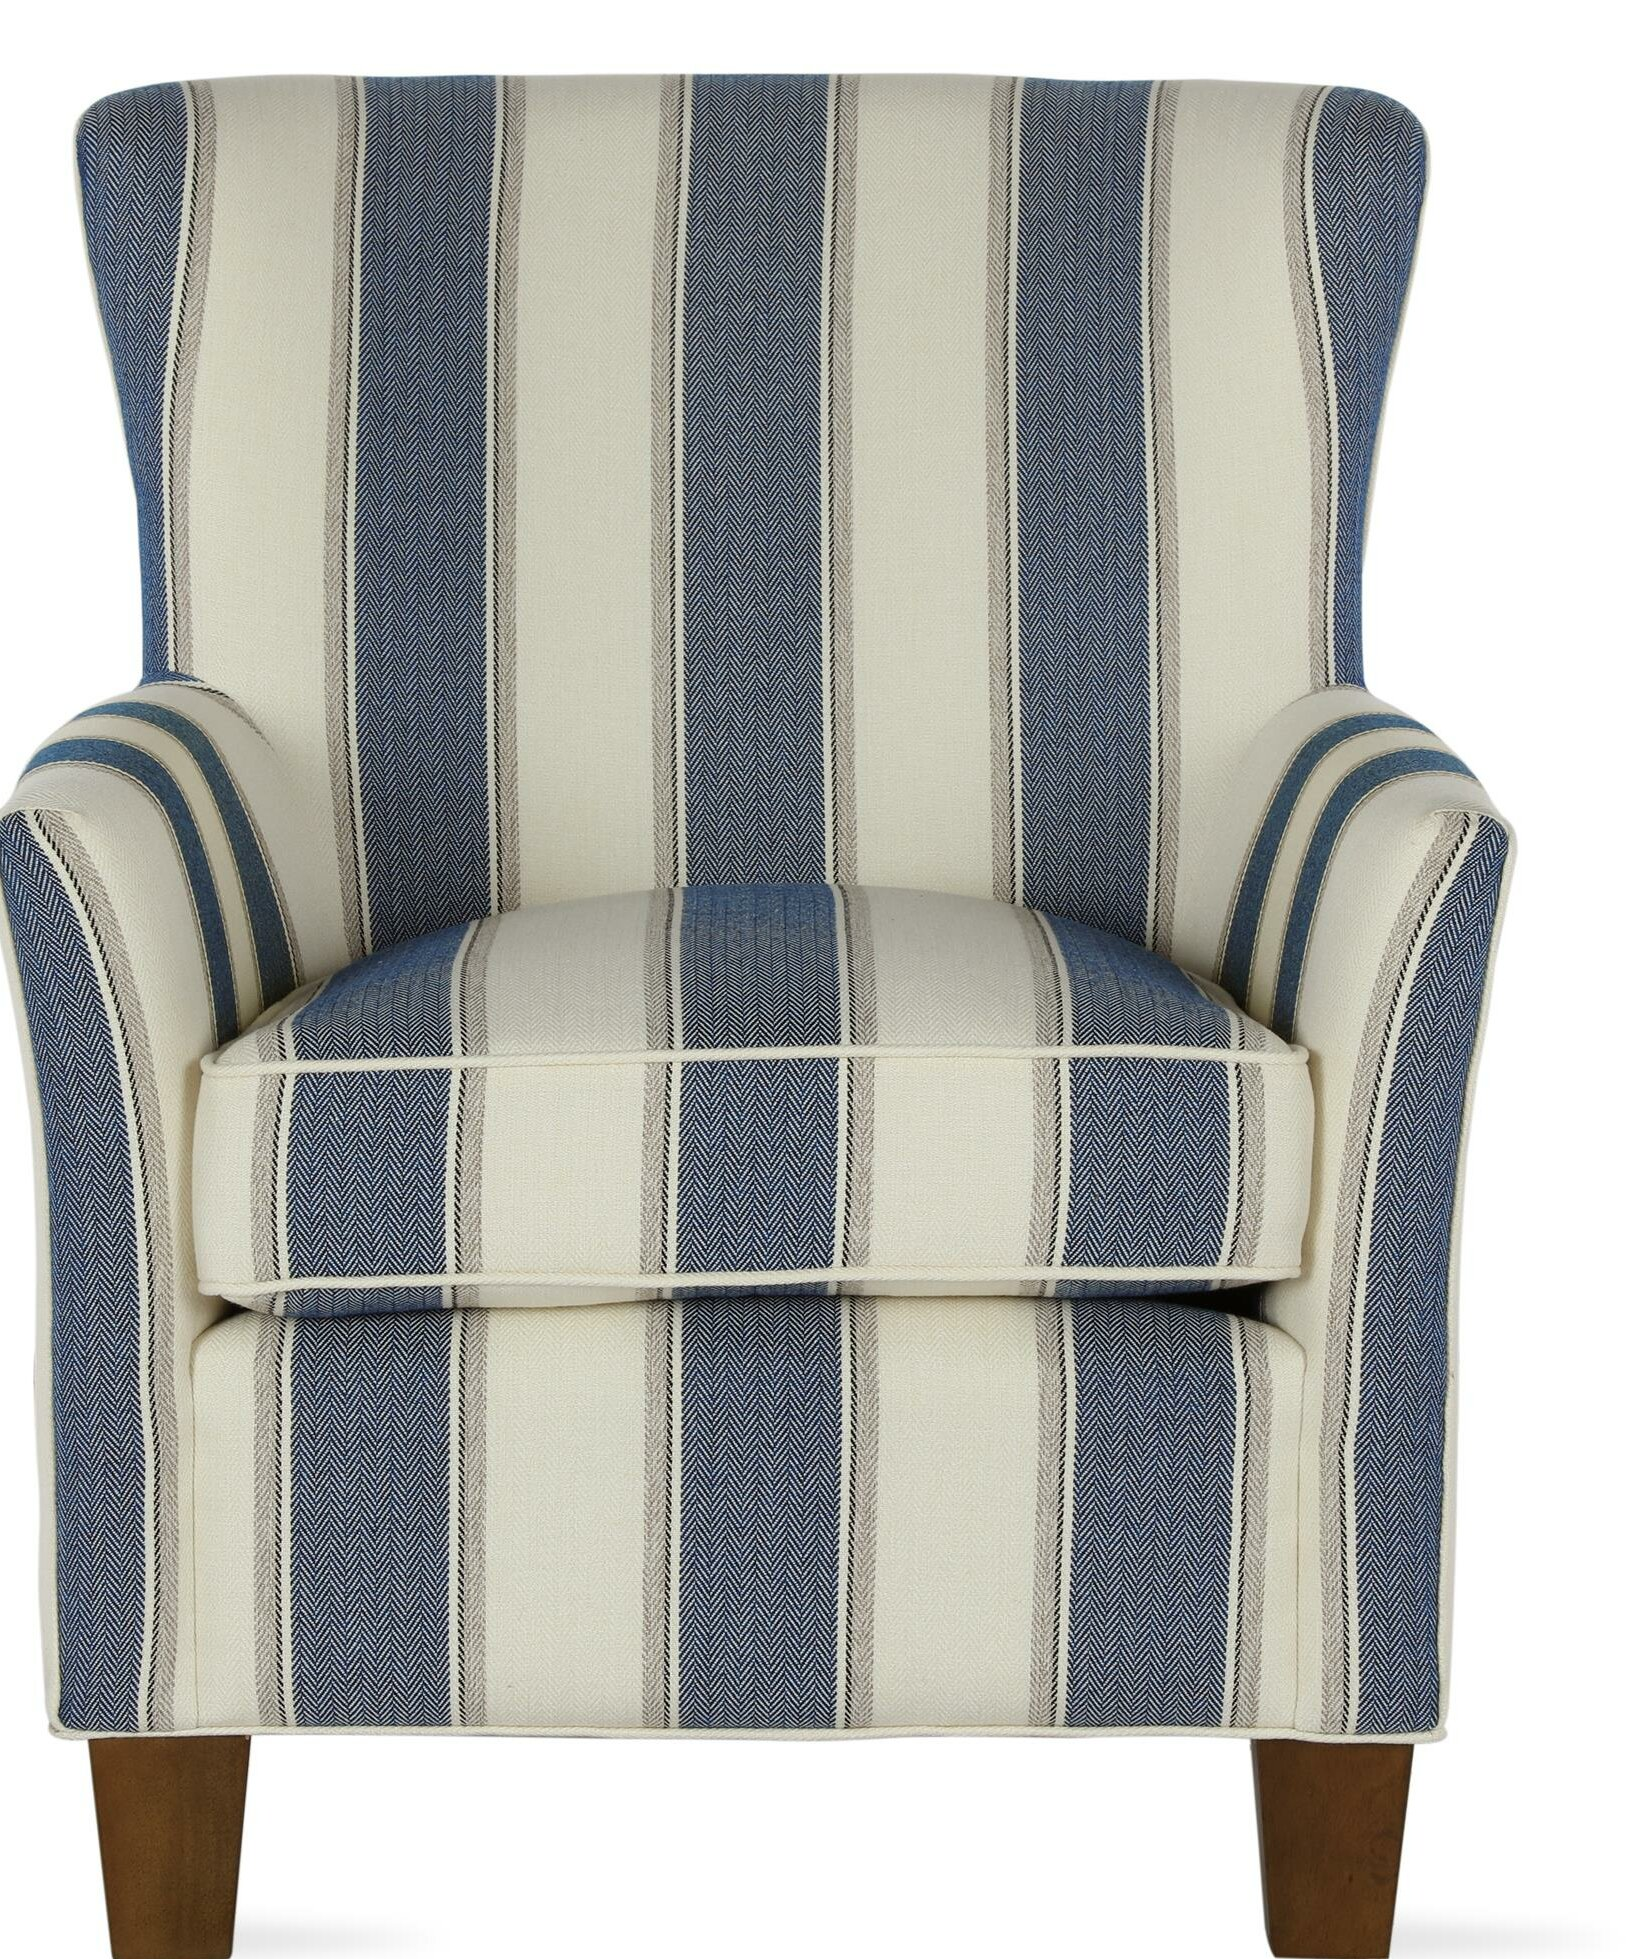 Laurel Foundry Modern Farmhouse Accent Chairs You Ll Love In 2020 Wayfair